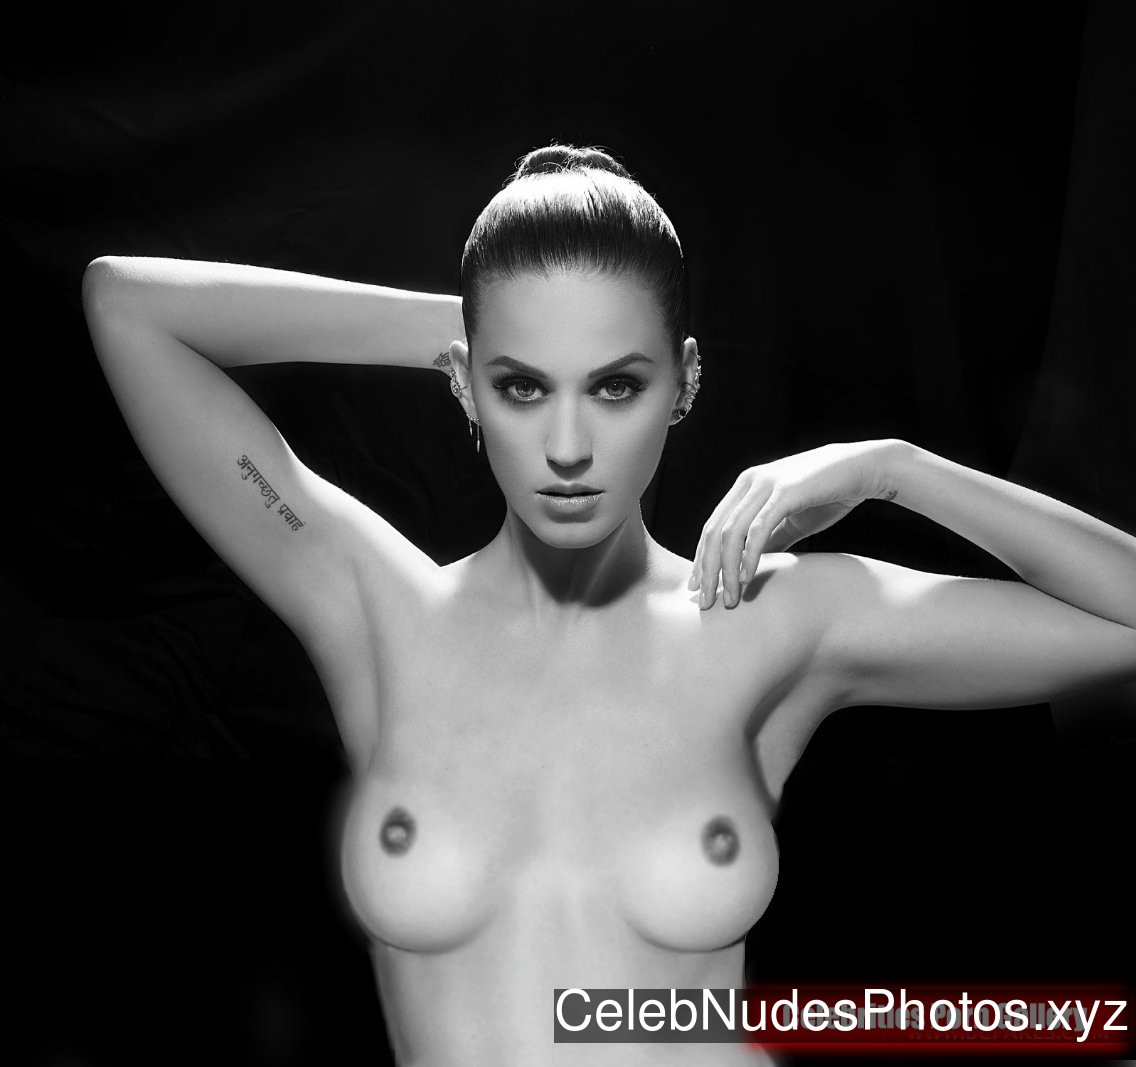 Katy Perry Naked Celebrity Pic sexy 4